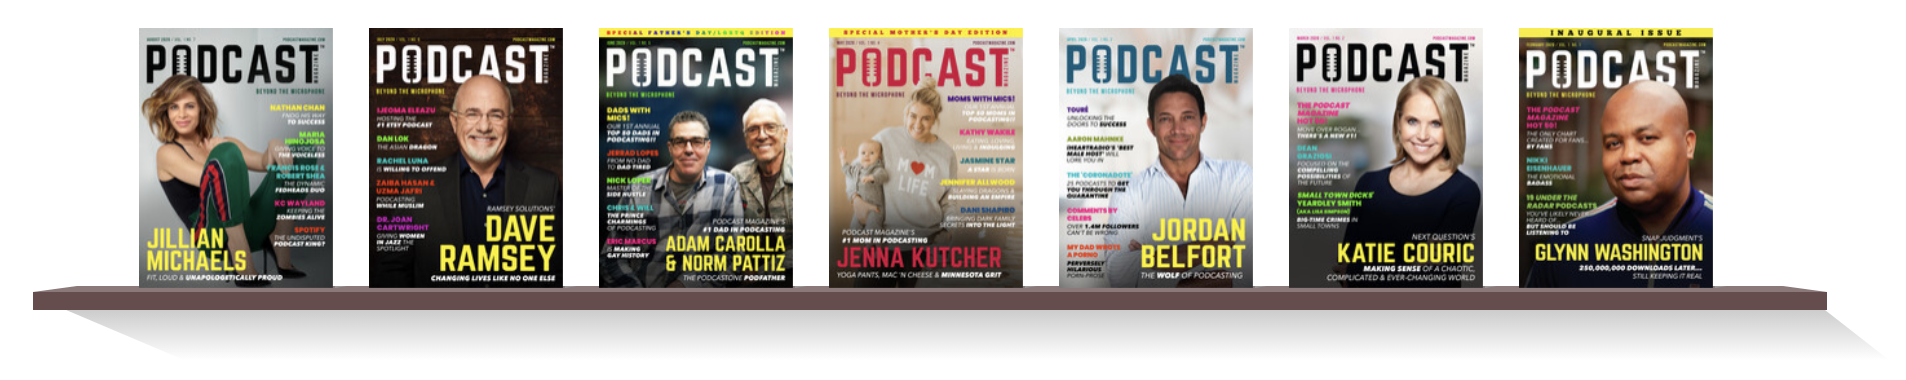 Podcast Magazine Bookshelf